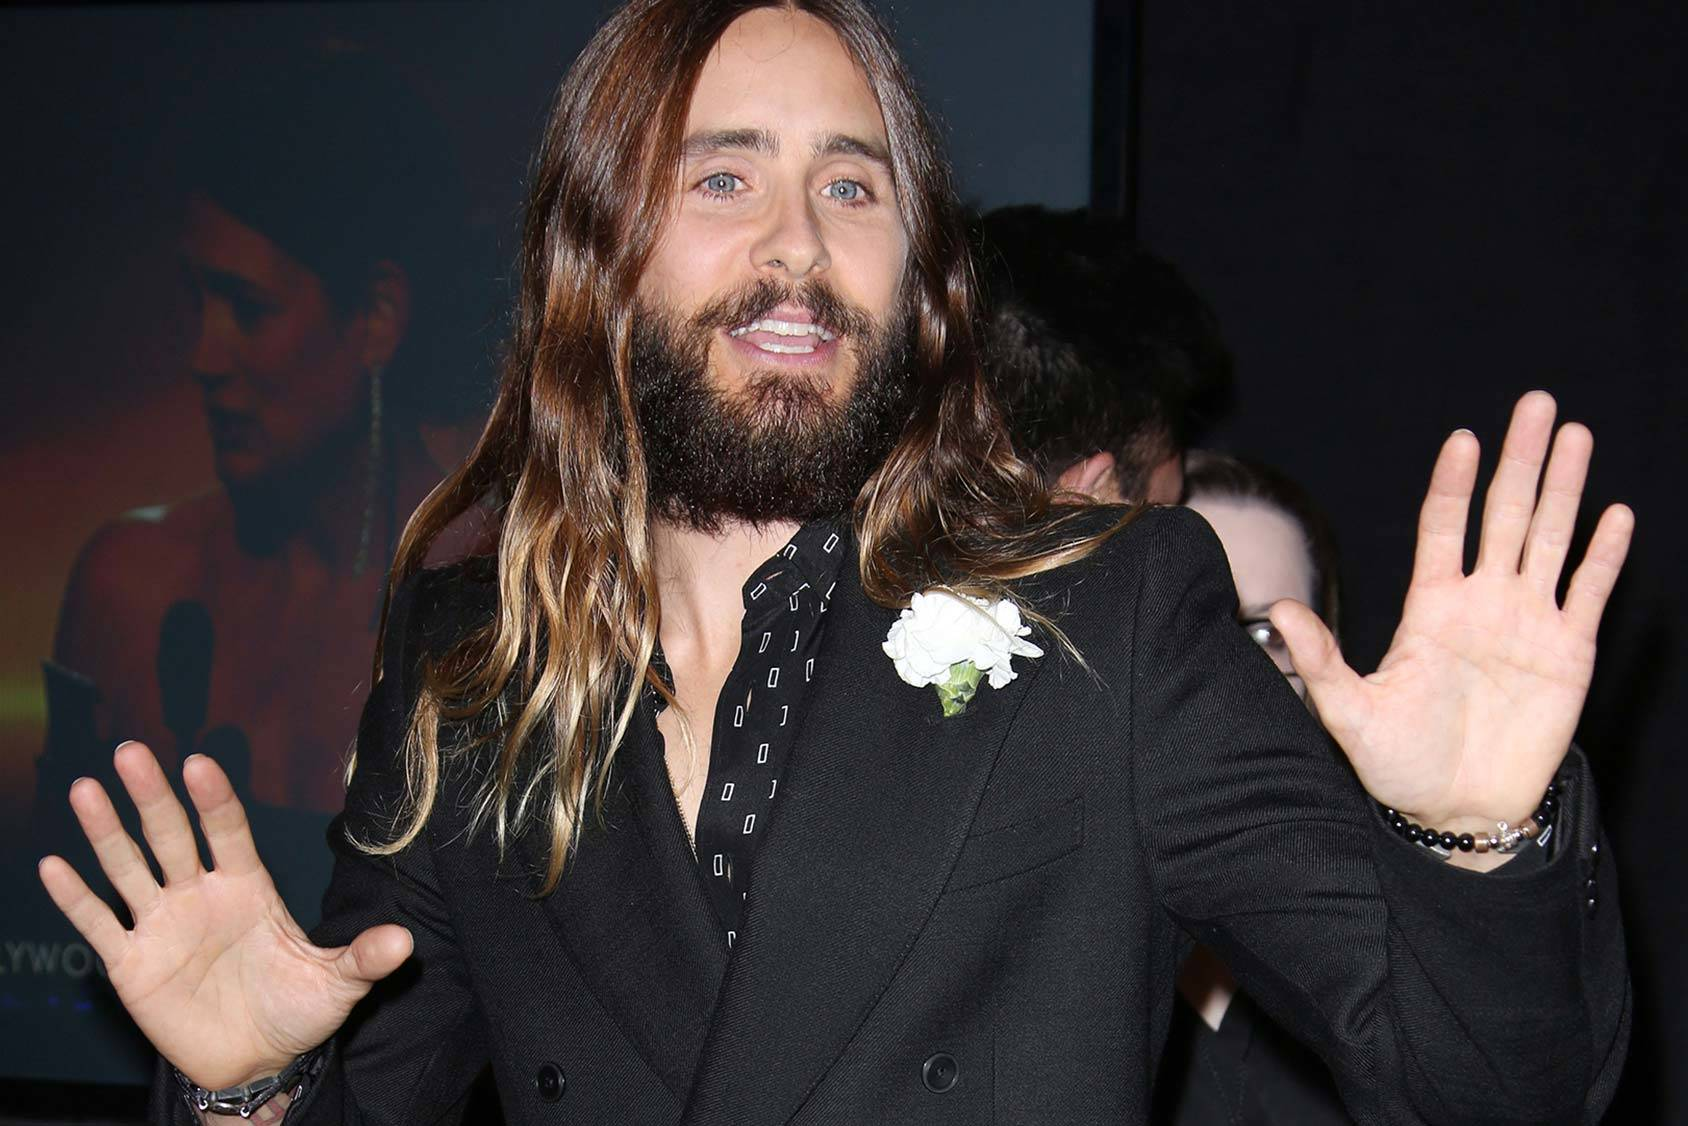 Jared leto, All Over Press.